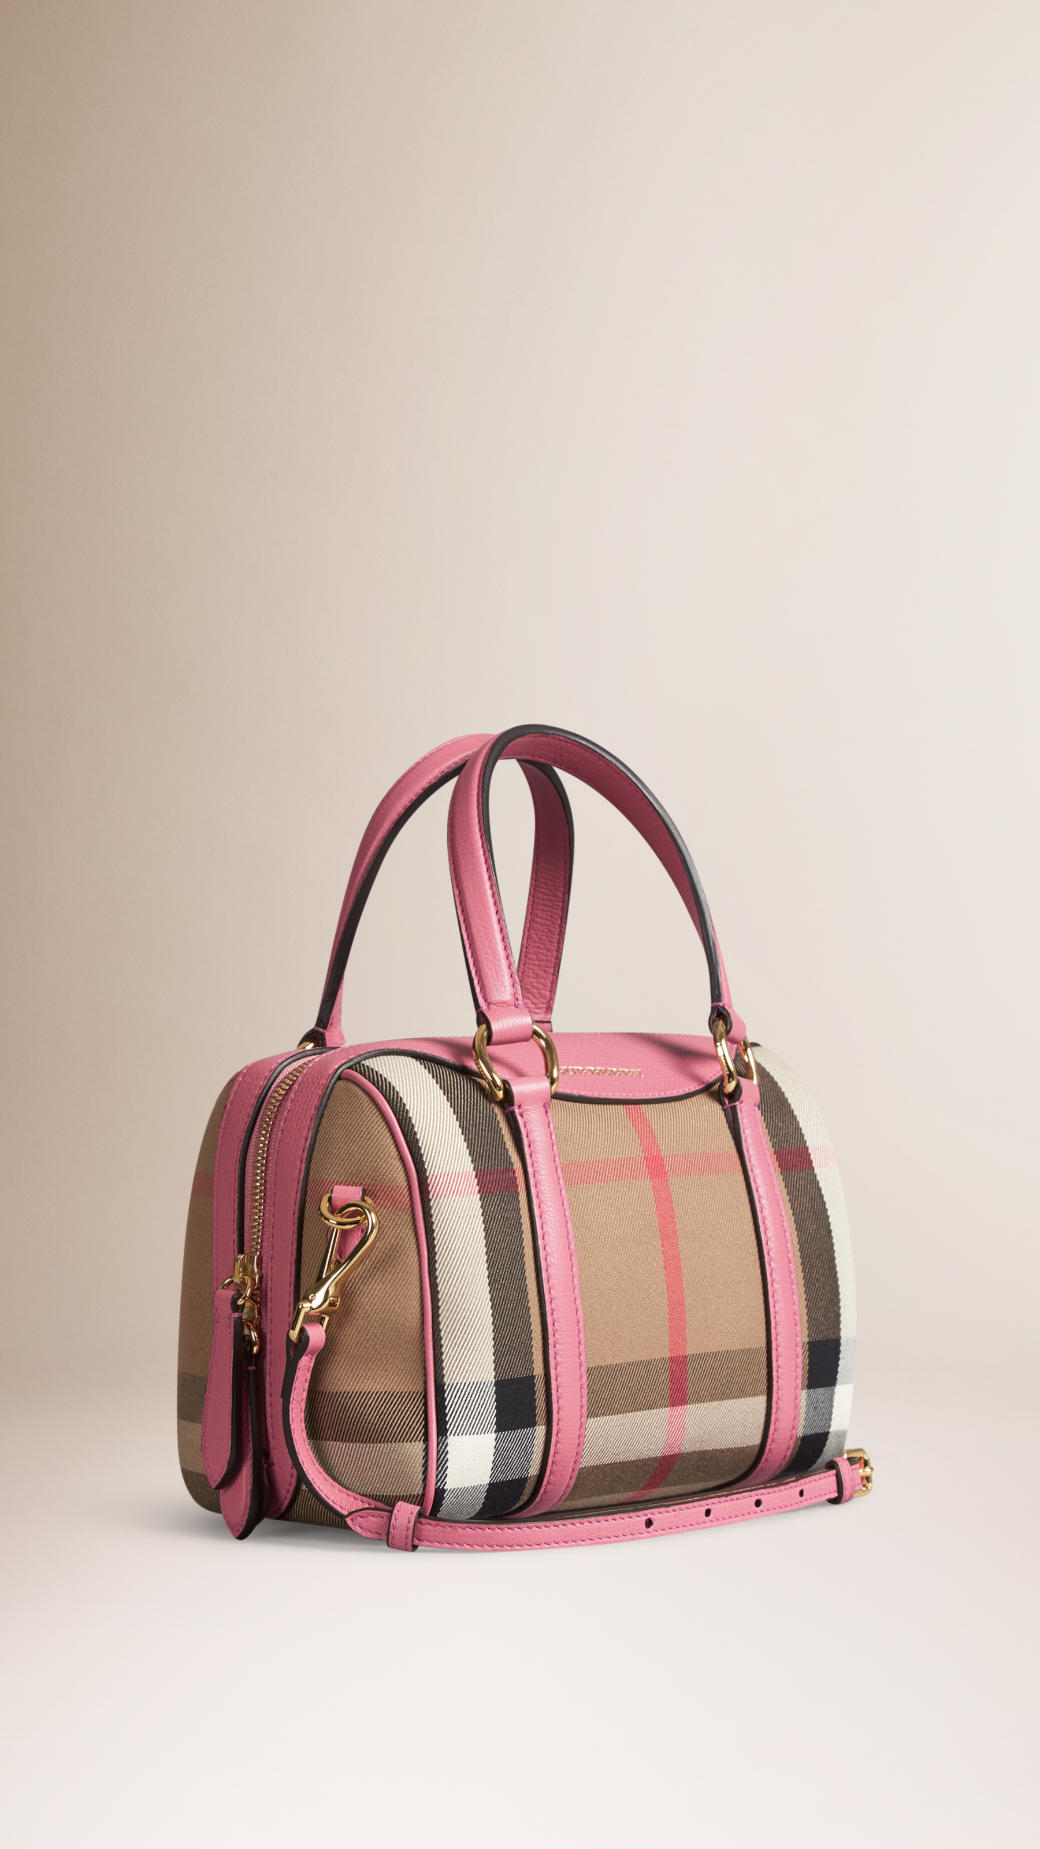 0fb071f0907 Burberry The Small Alchester In House Check And Leather in Purple - Lyst